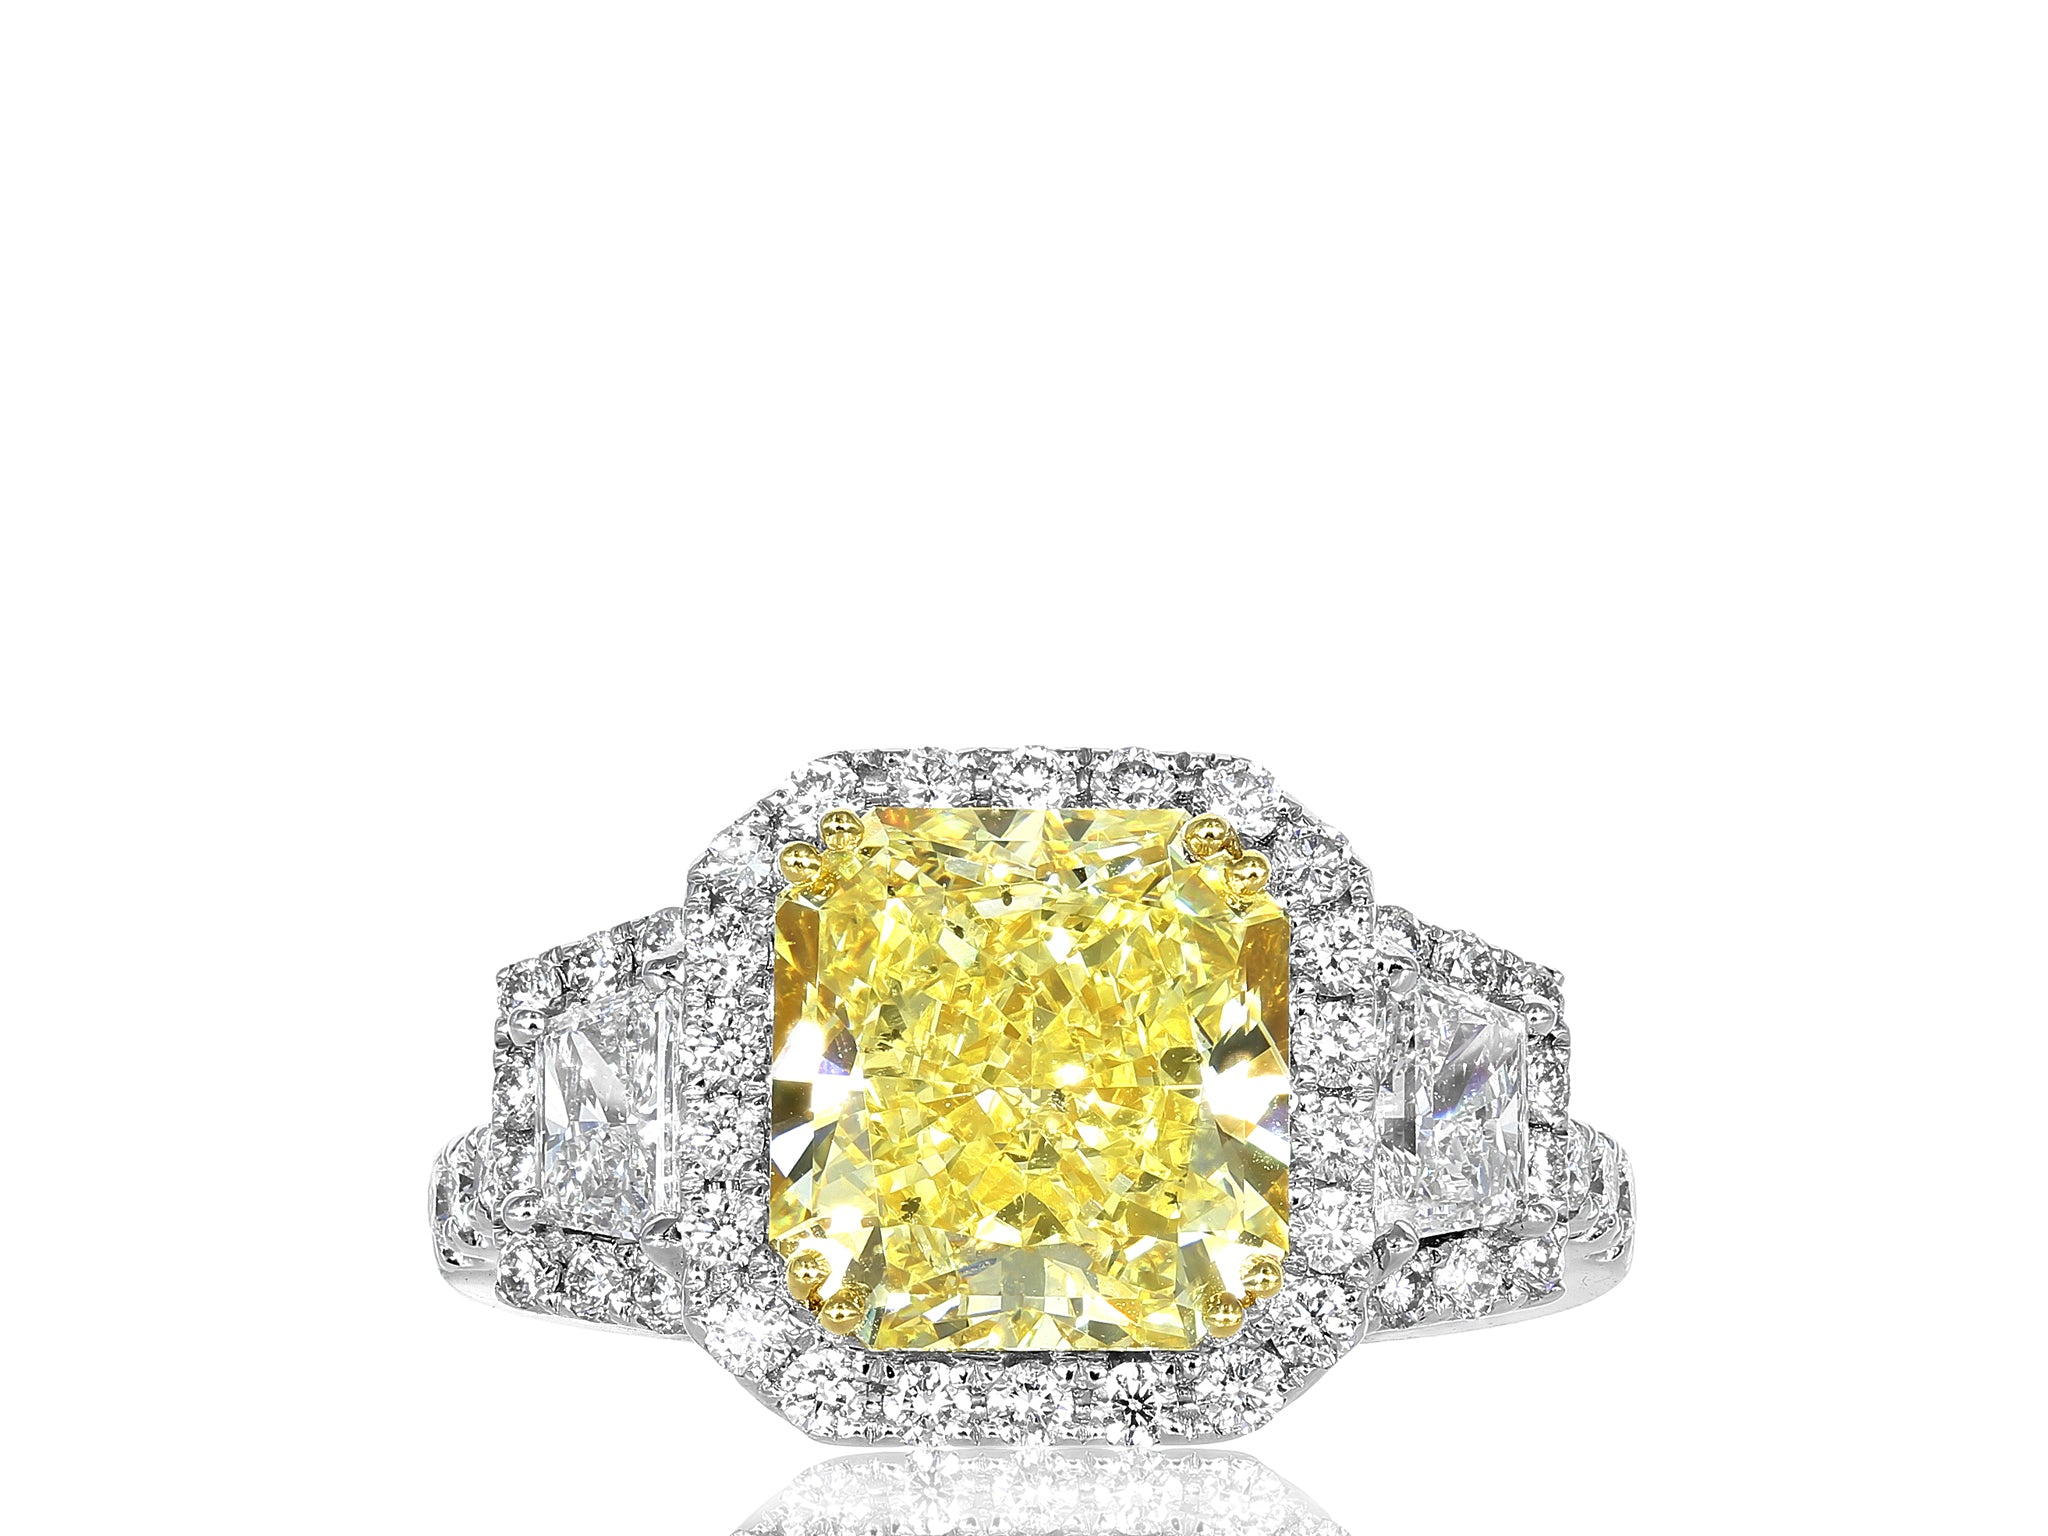 3.77ct GIA FY Canary Diamond Ring